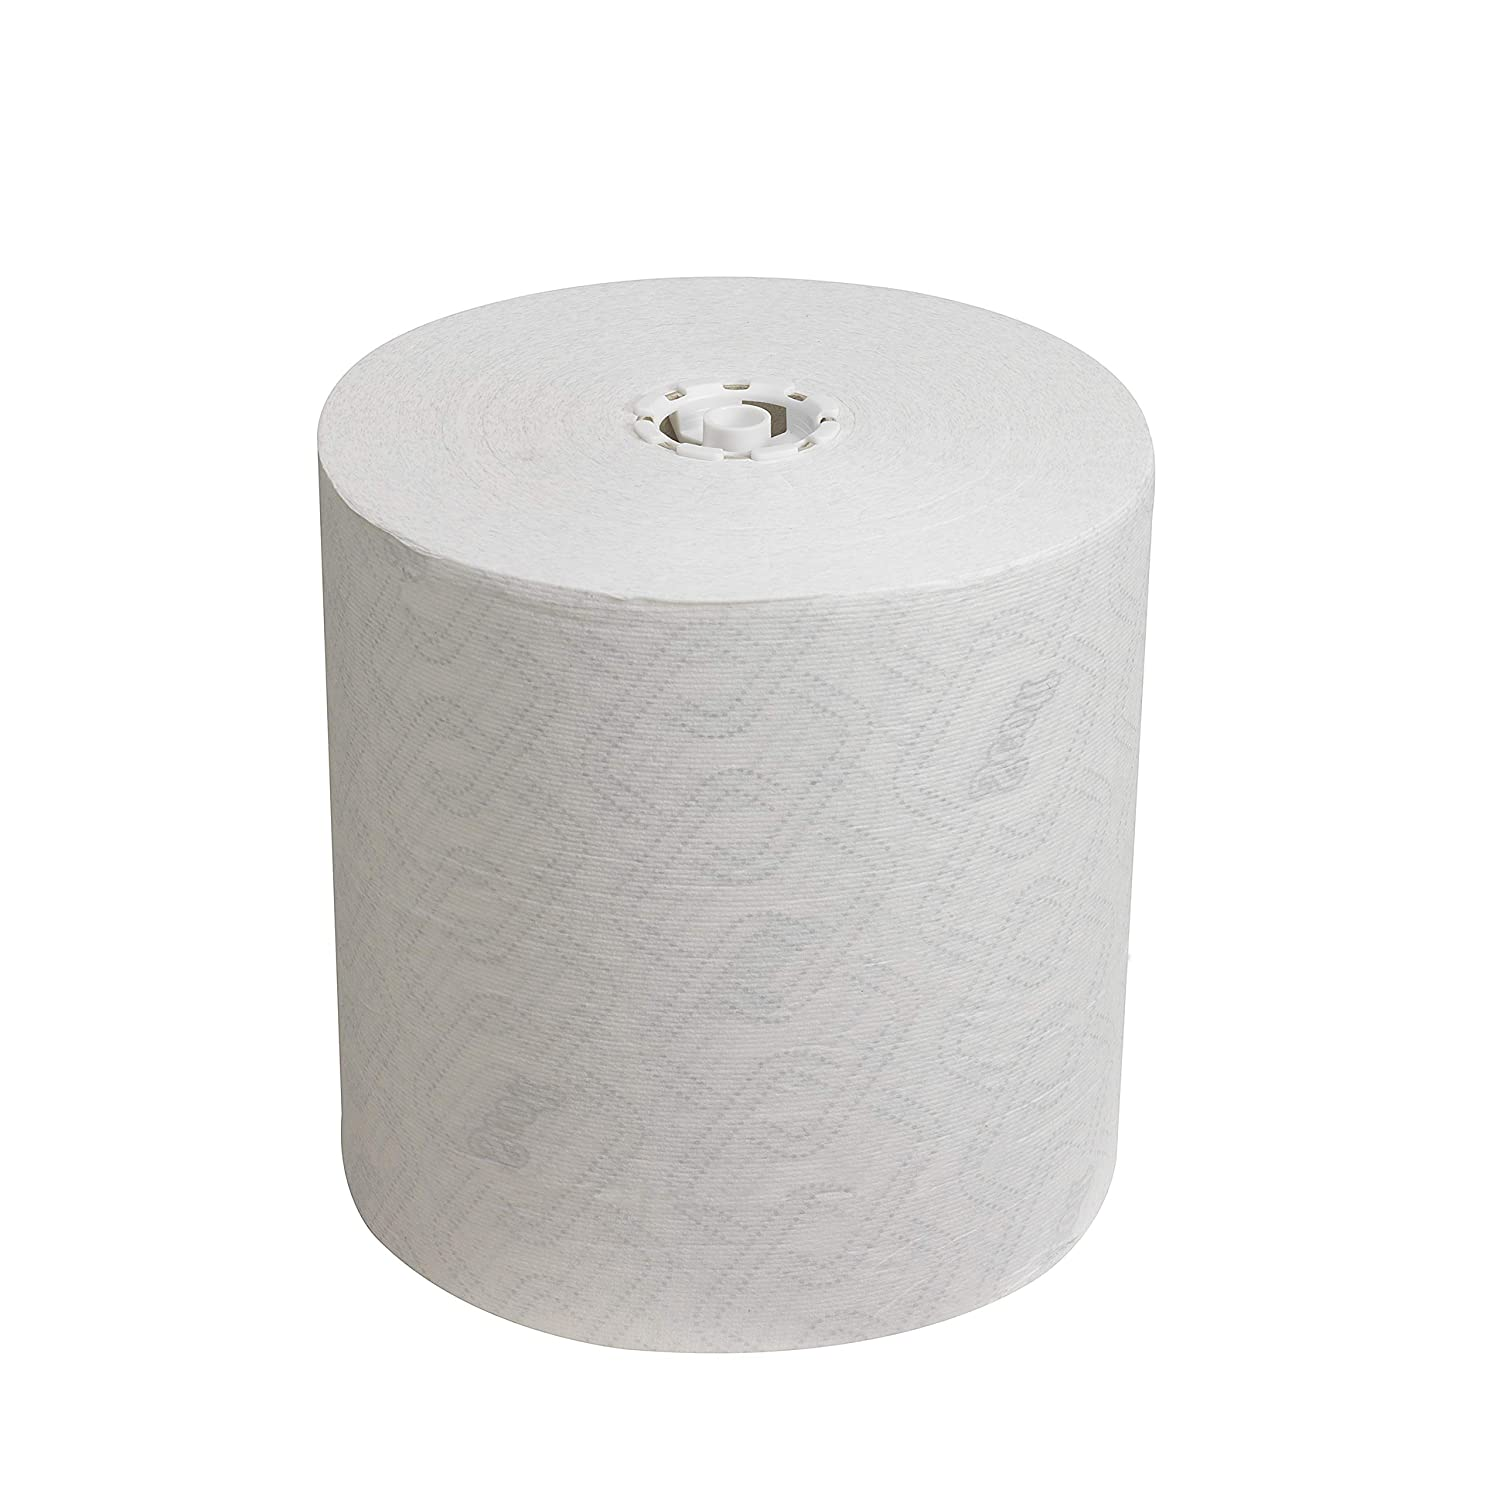 Rolled Hand Towels Scott Essential White 1 Ply 6691 6 Rolls x 350 m